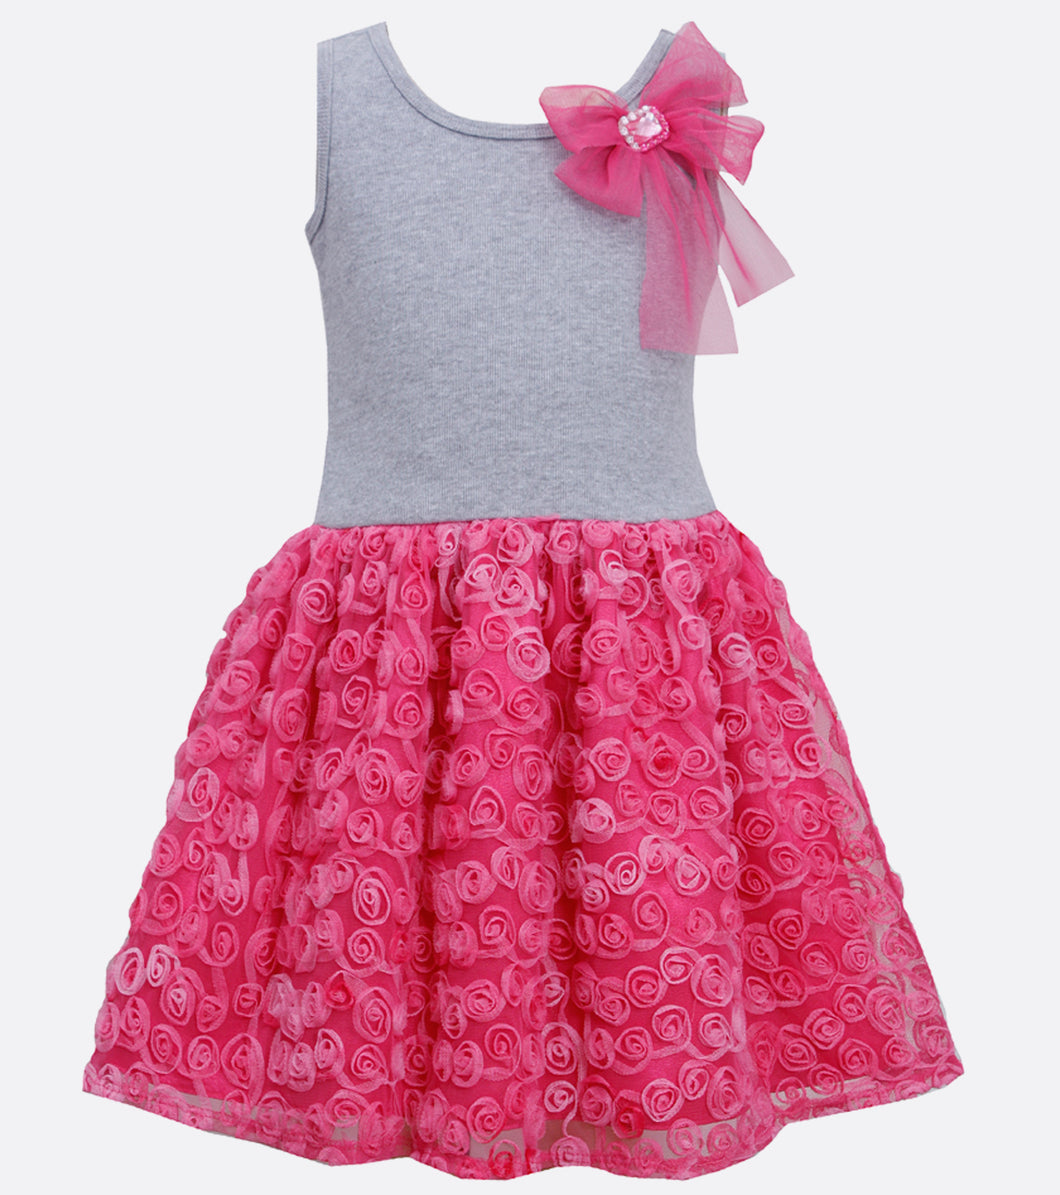 Gray and Fucshia bonaz dress with bow